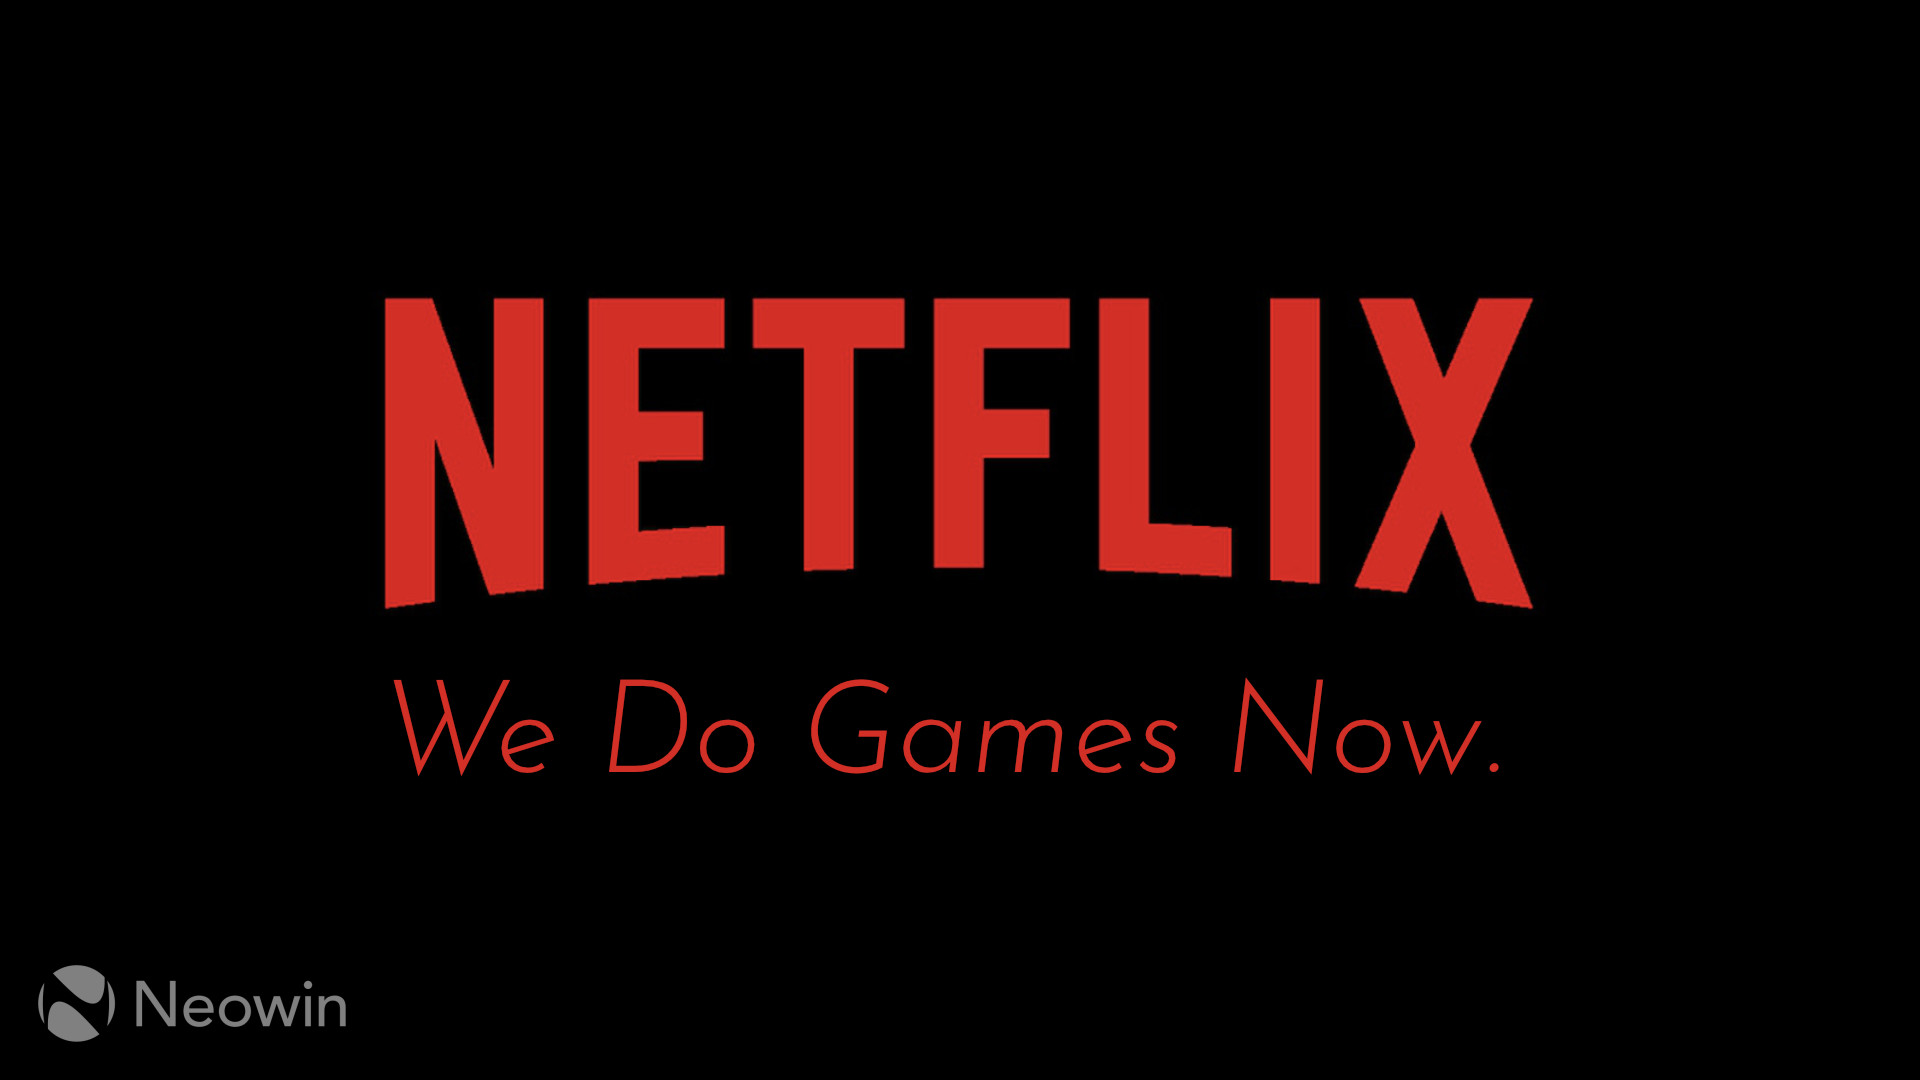 Netflix Is Adding Streaming Games To Its Service